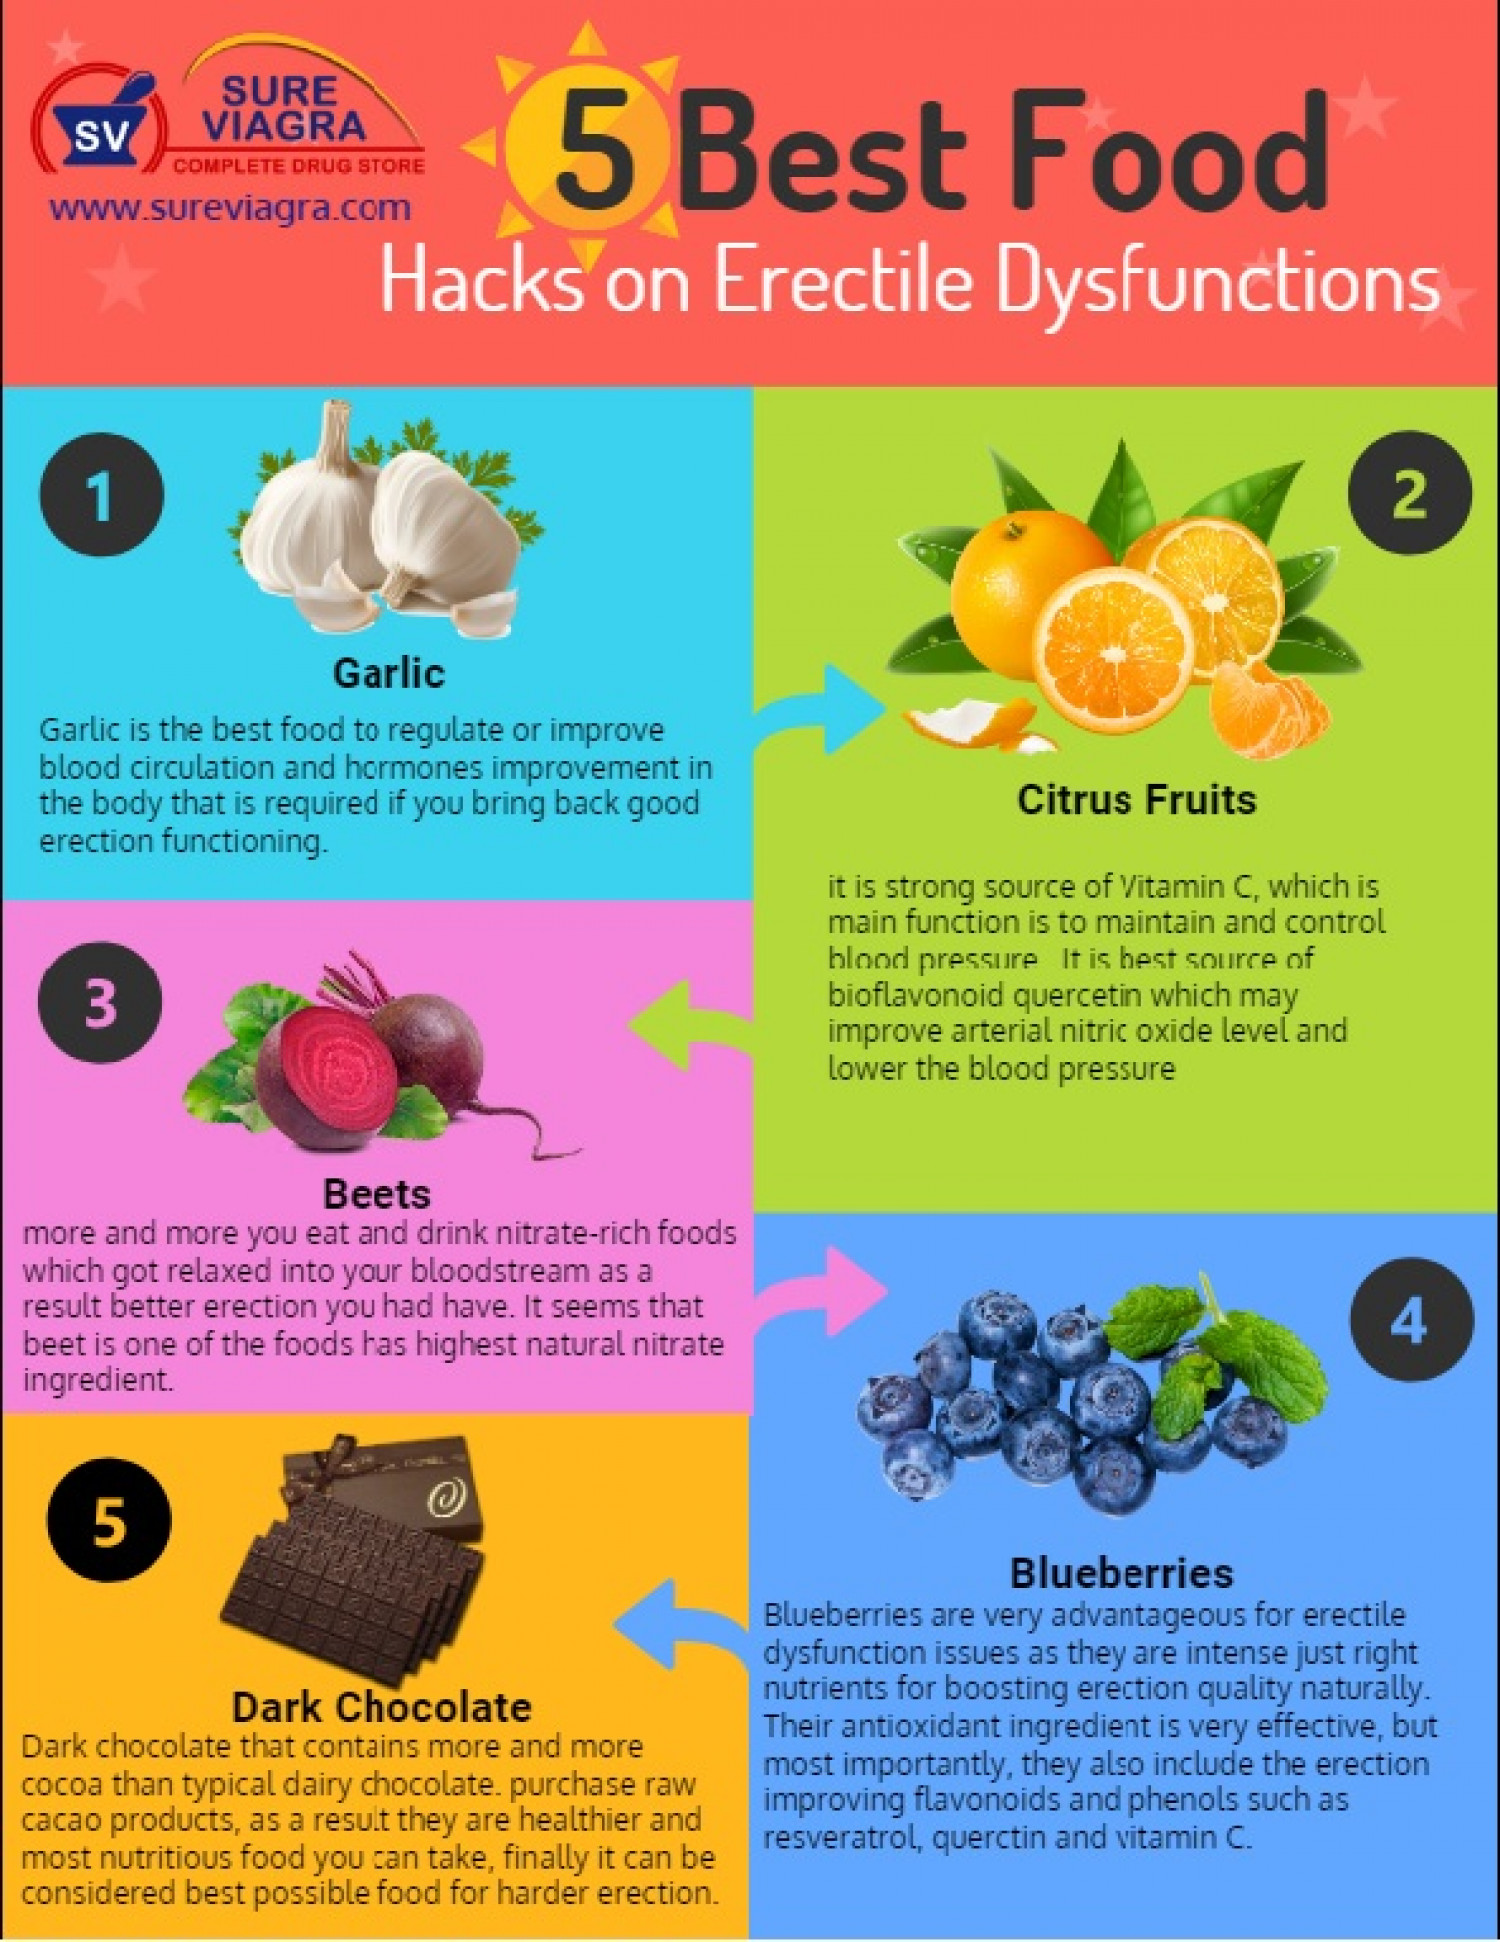 5-best-food-hacks-on-erectile-dysfunctions_infographic-plaza